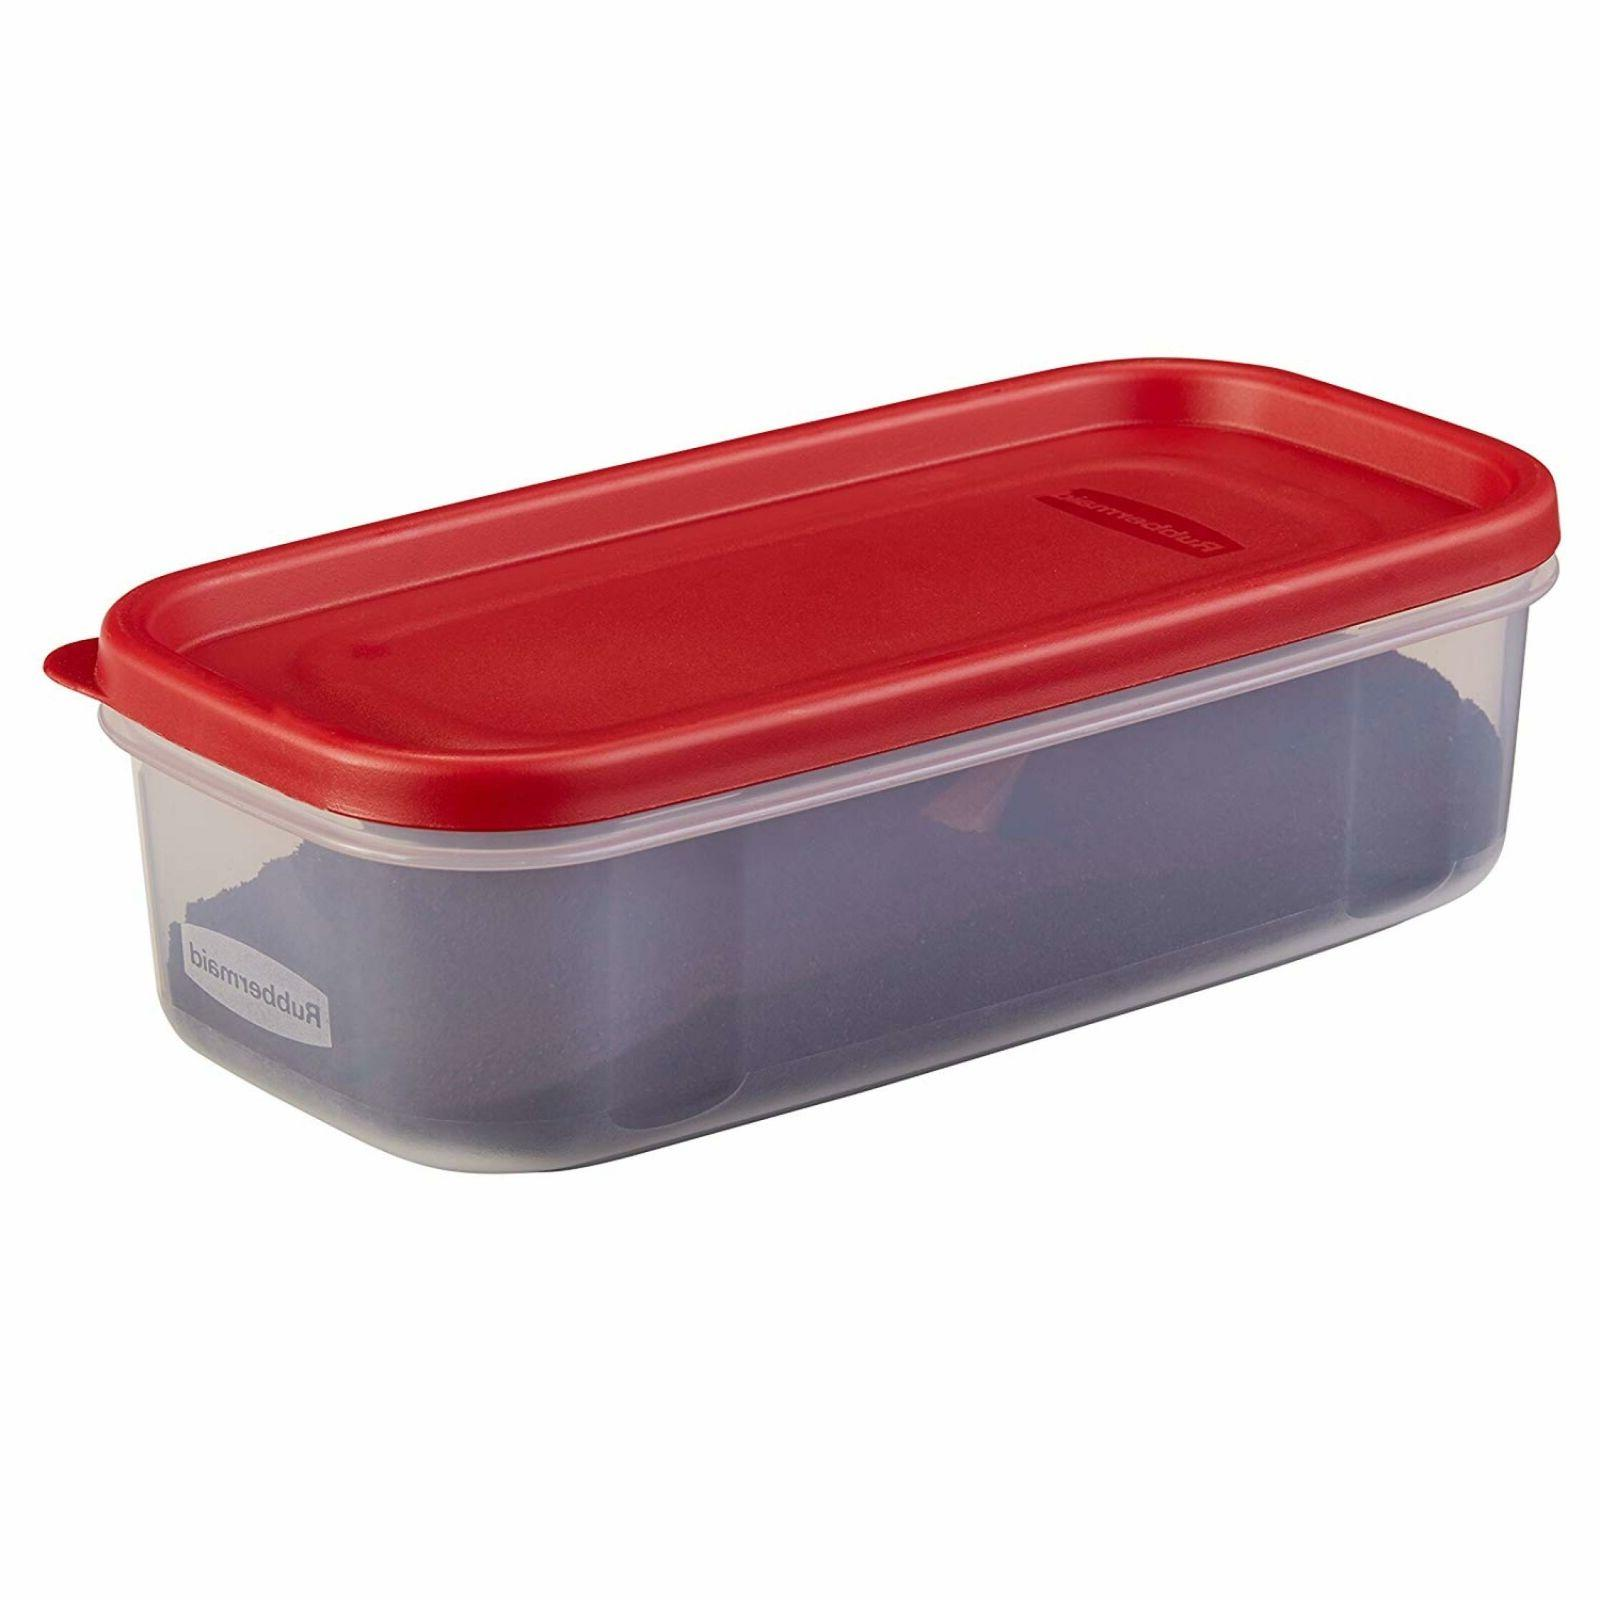 modular food storage container 5 cup racer